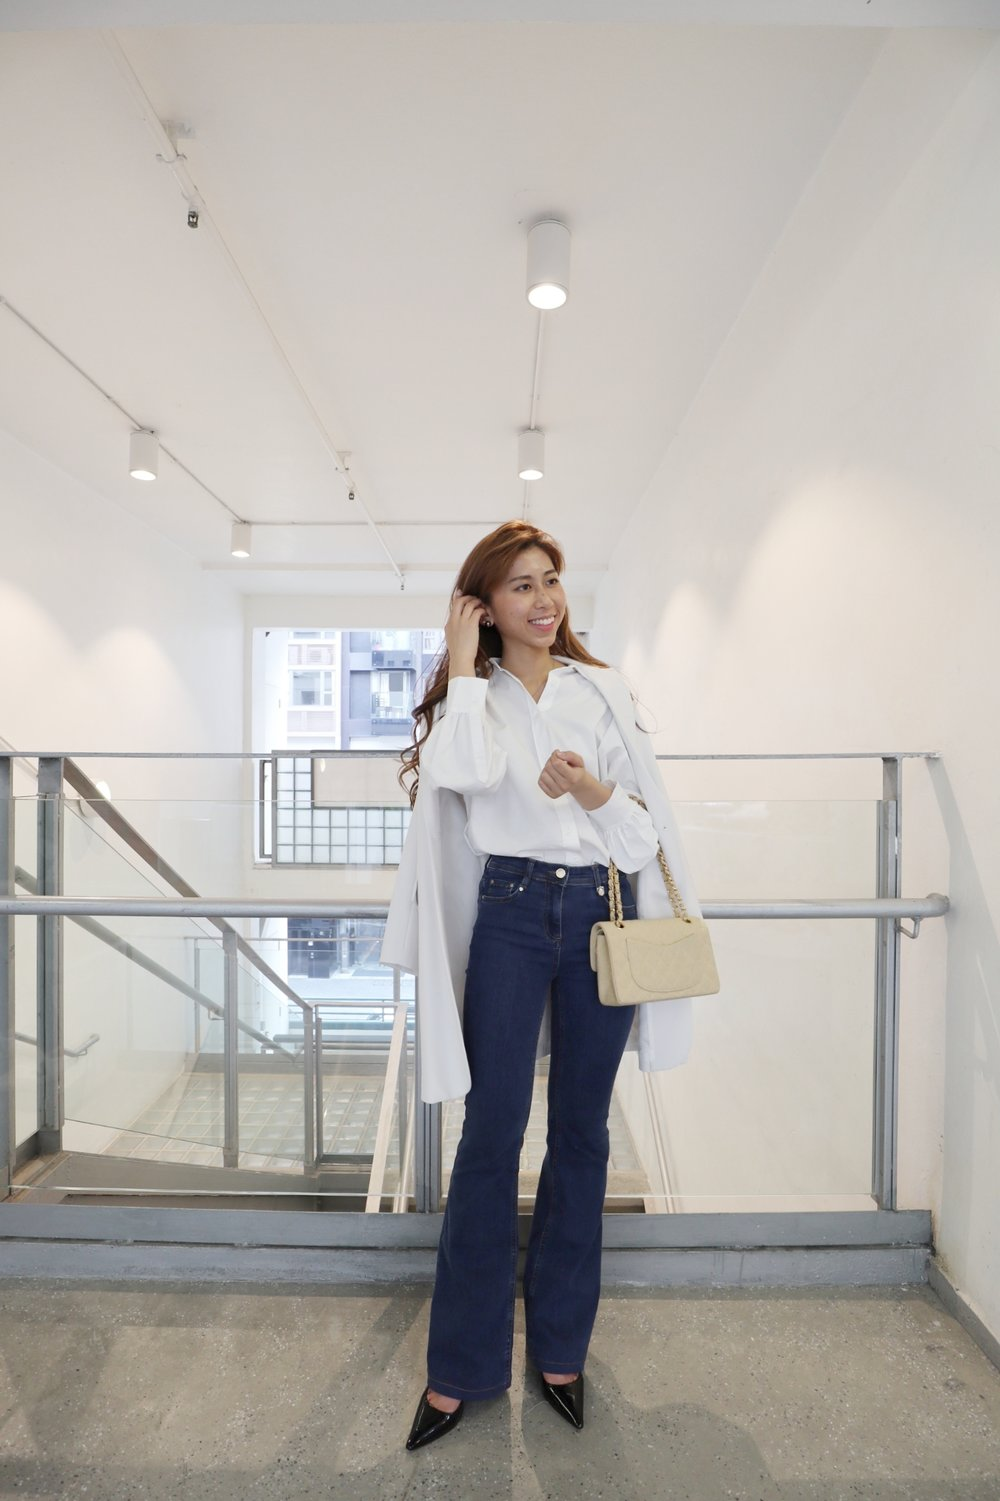 Shirt from Japan / Blazer from Japan /  Pennyblack Jeans kick flare fit super stretch  ($2000) / Chanel vintage /  Dior slingback in black patent calfskin